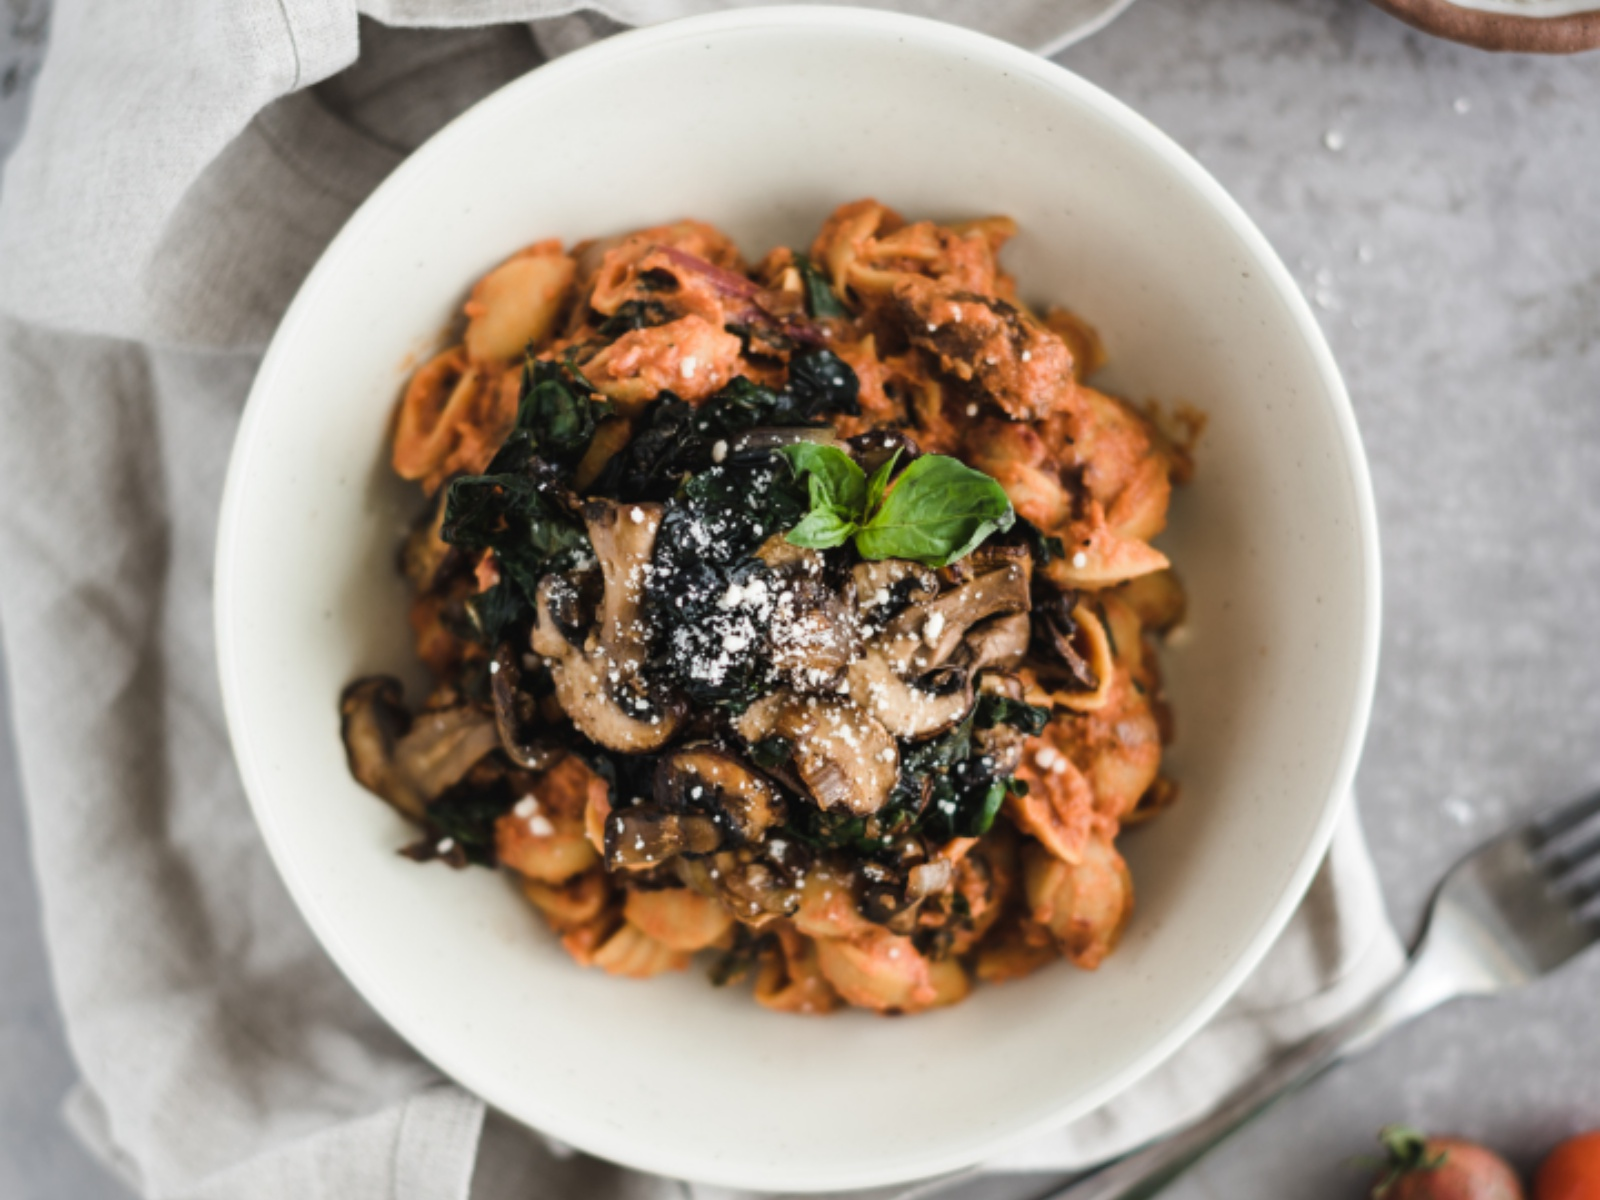 Mushroom and Swiss Chard Pasta with Creamy Rose Sauce